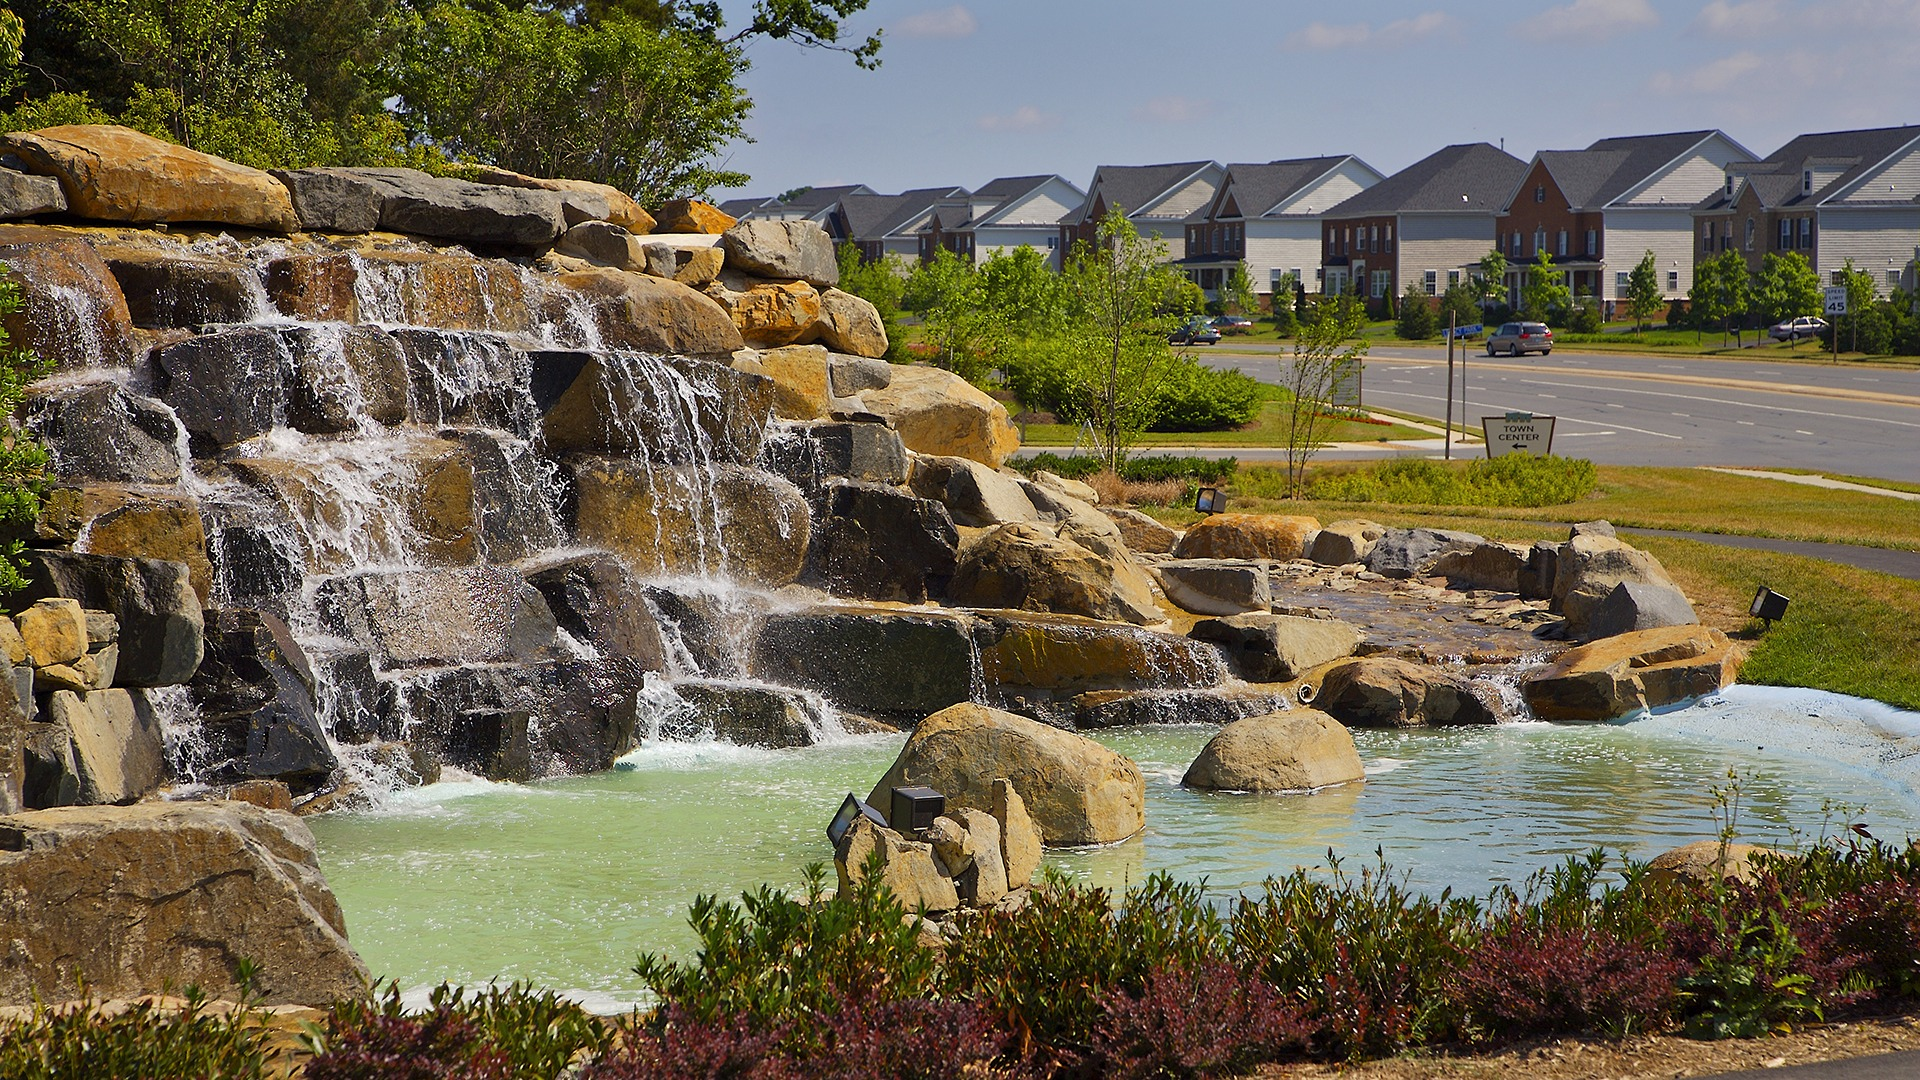 "Brambleton ""theme image"". Often, when designing a community, we use a theme image to inspire us conceptually and creatively. This is a shot of one of several water features throughout Brambleton."